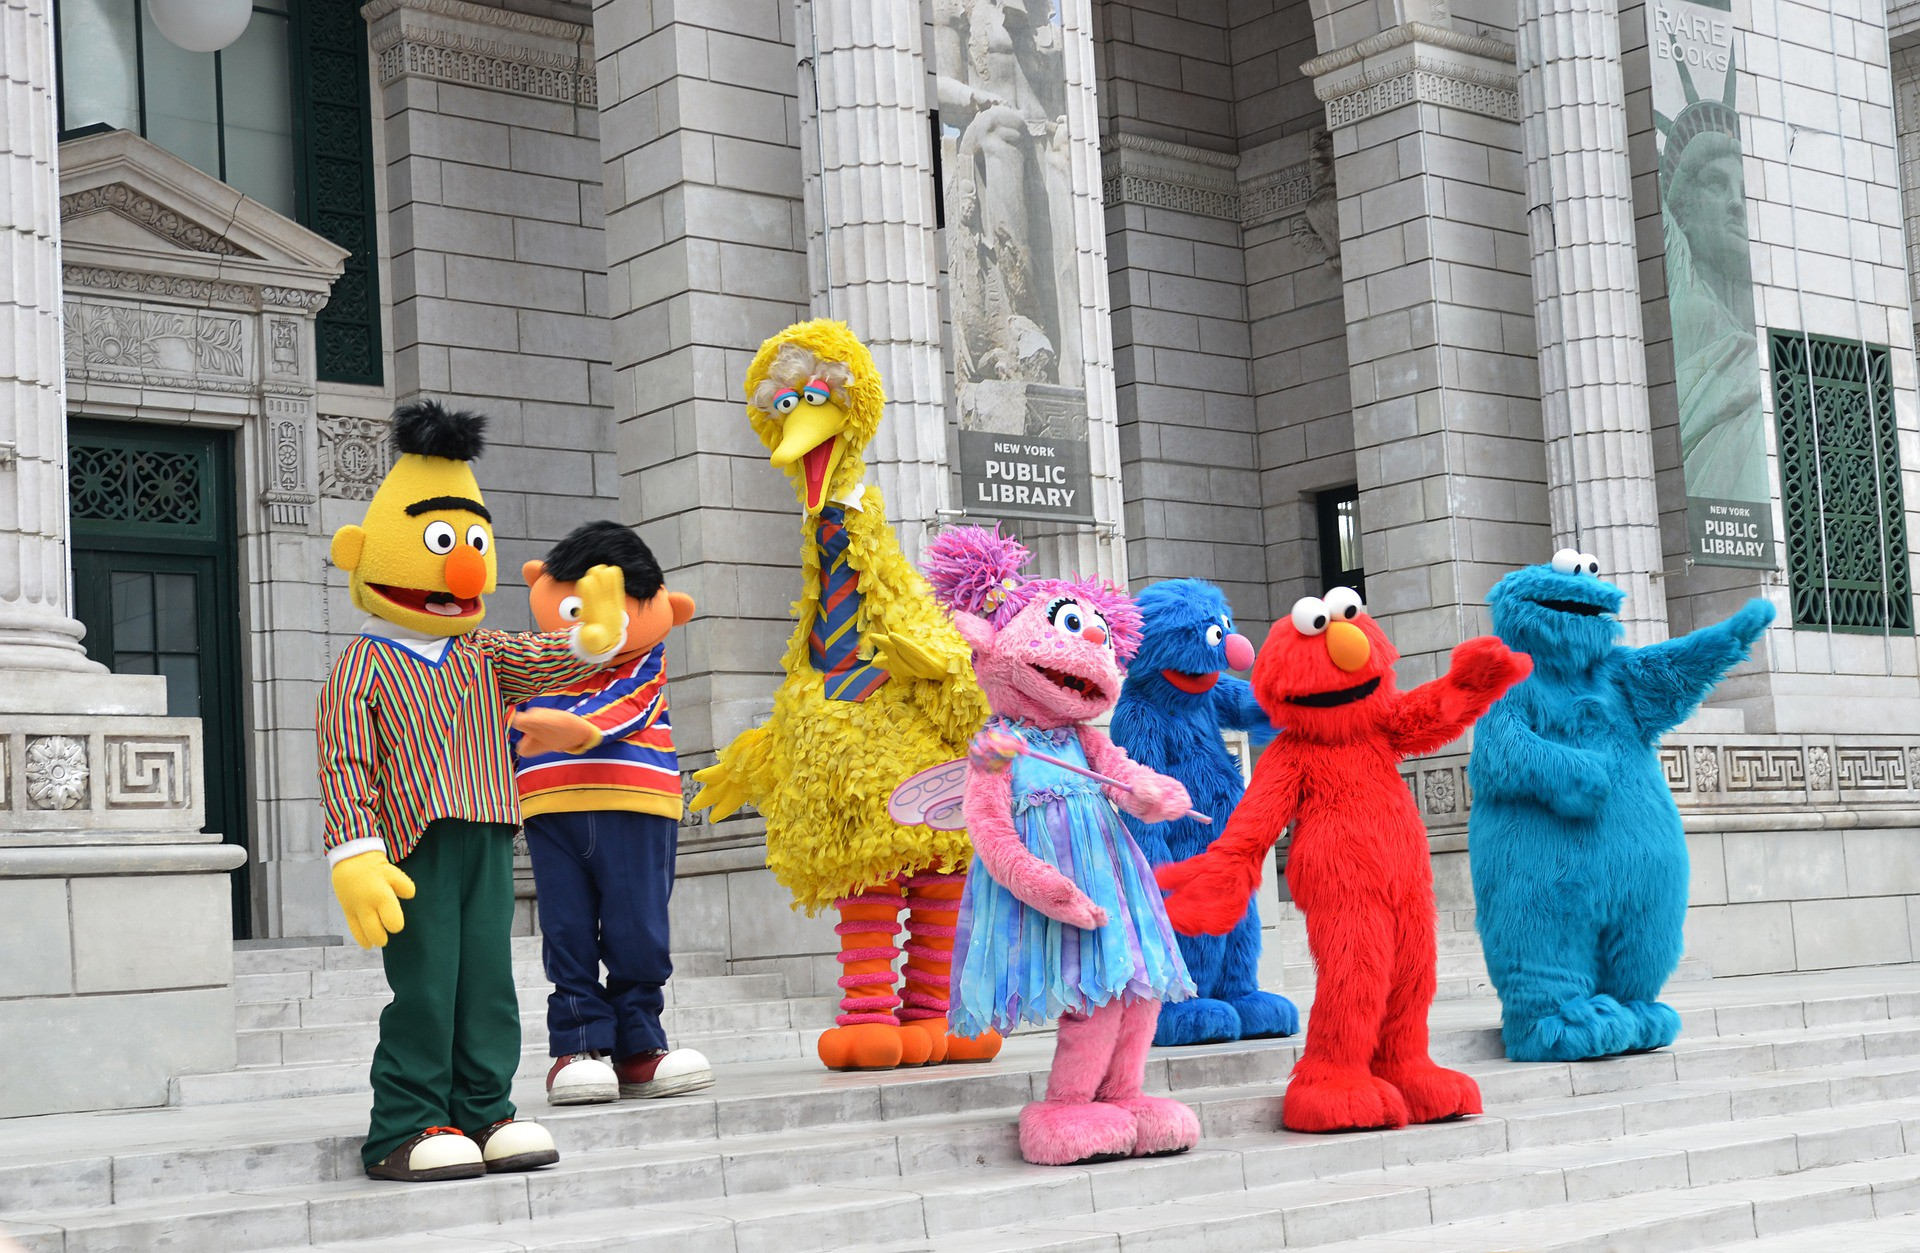 Beloved characters from the hit TV show Sesame Street wave from the steps of the New York Public Library.